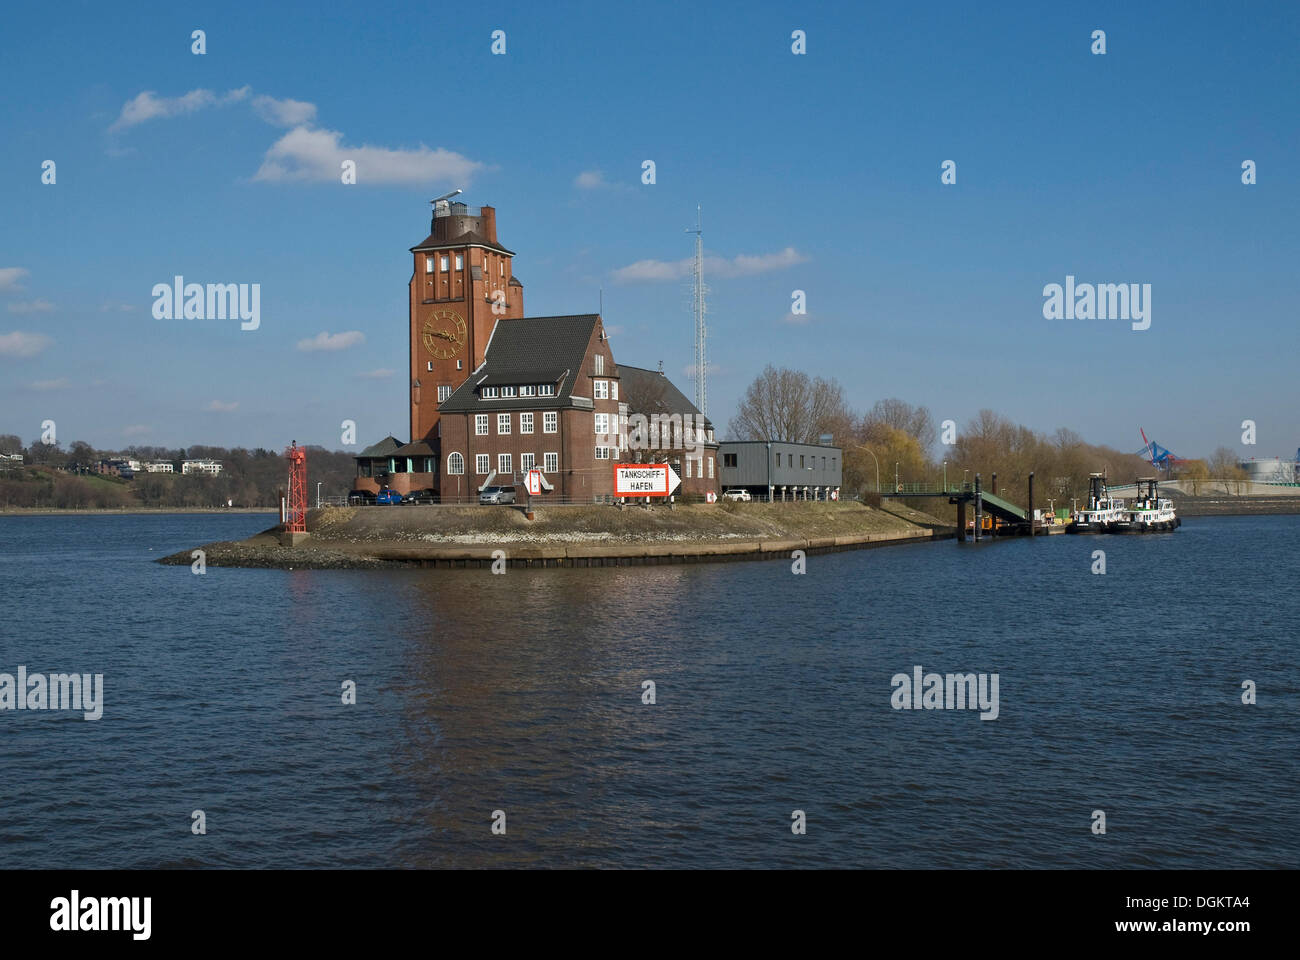 Port of Hamburg, entrance to the Tankschiffhafen, tanker port, Elbe river, Hamburg - Stock Image